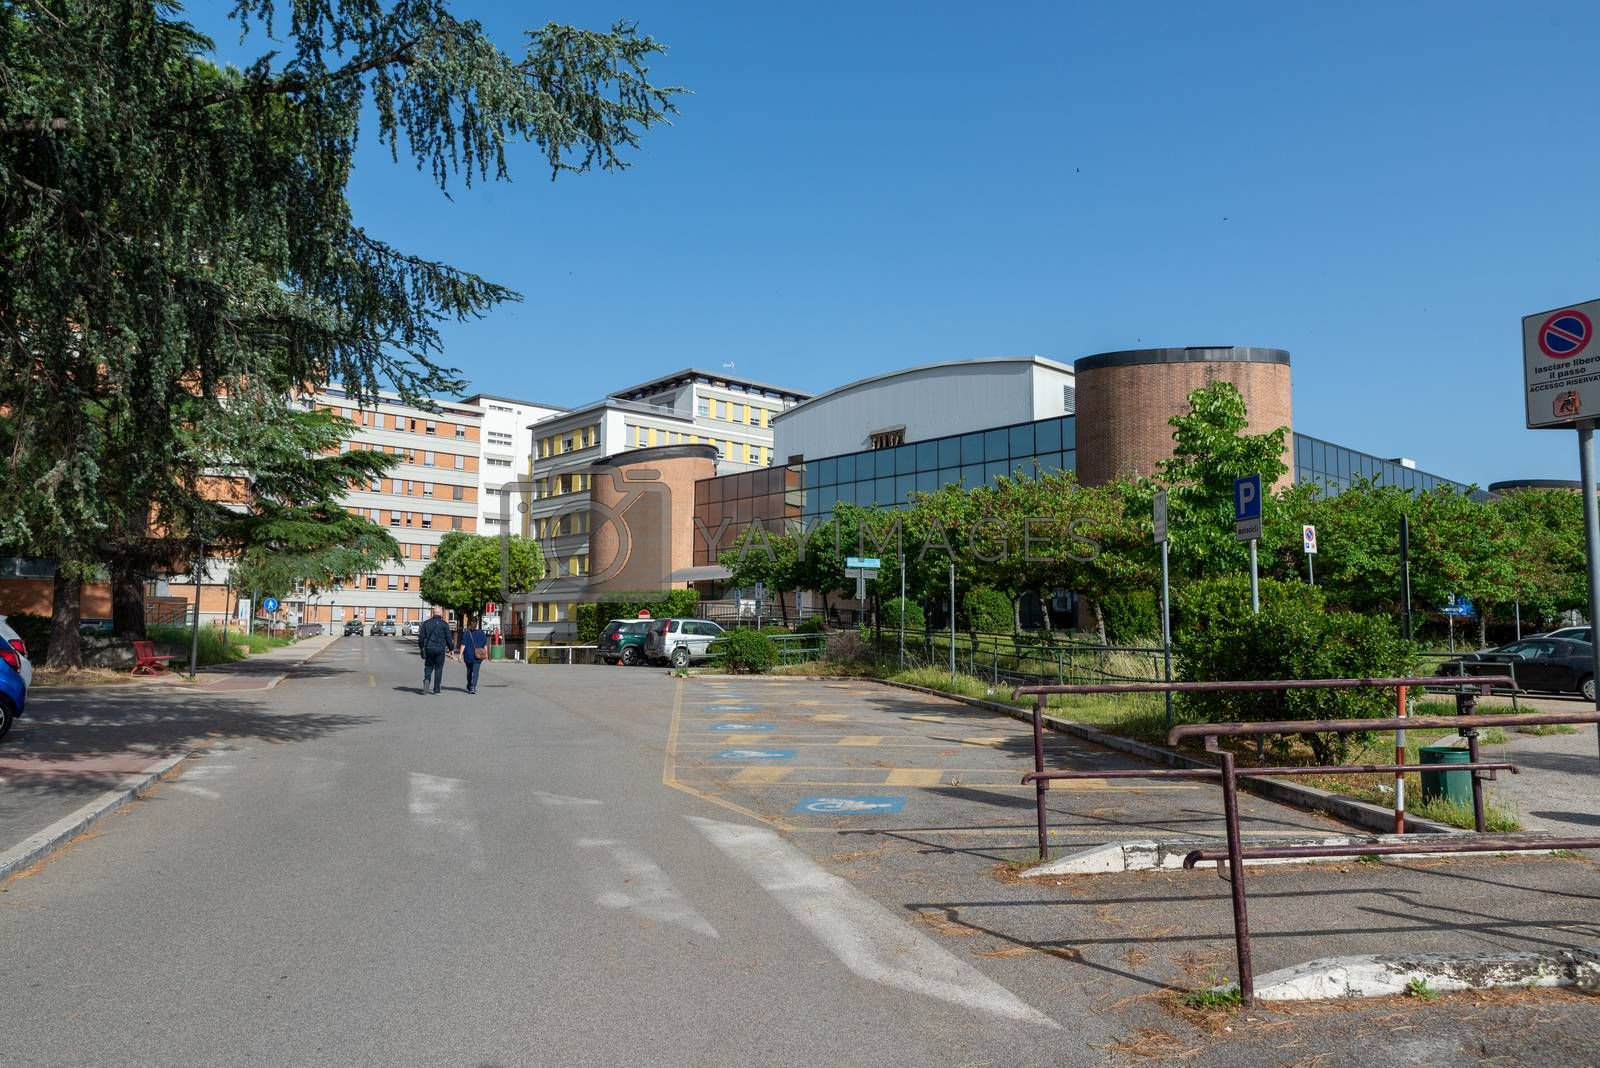 terni,italy may 17 2020 :Santa Maria hospital with emergency aid on the right desert for covid emergency 19